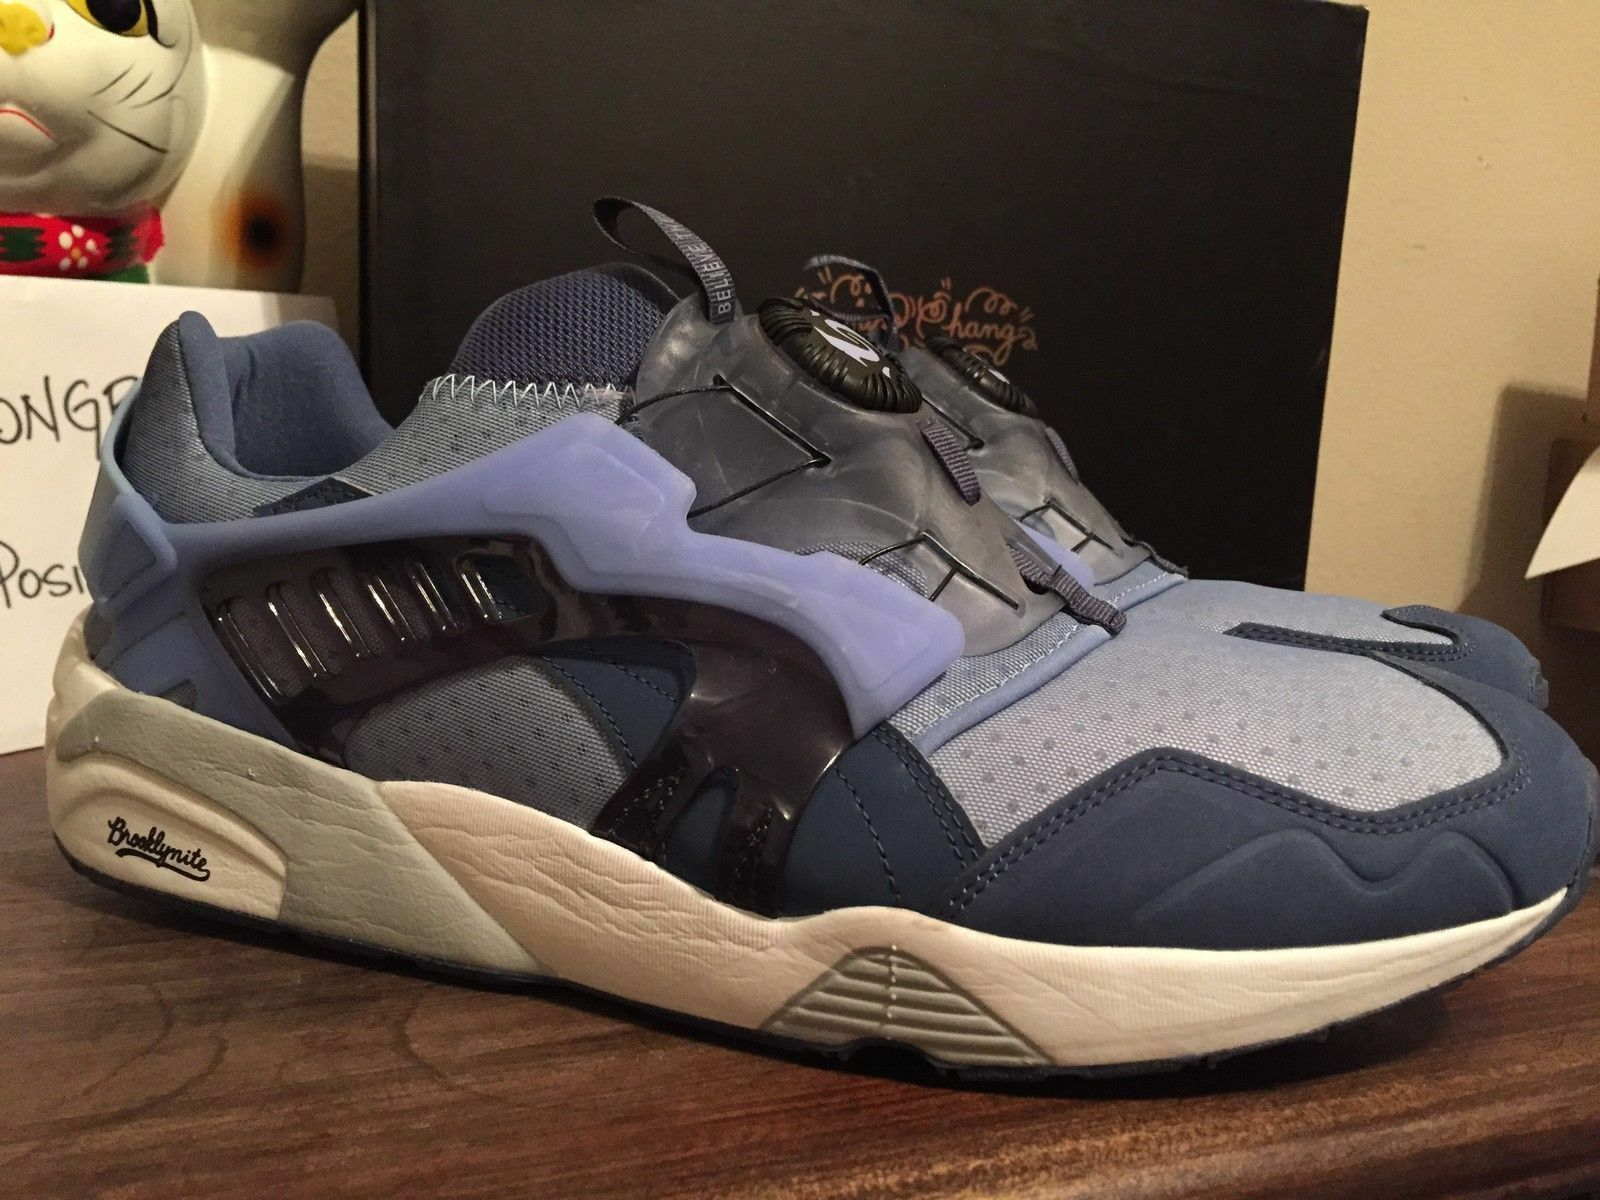 Puma x Sophia Chang Trinomic Disc Blaze - Bijou Blue - Comfortable